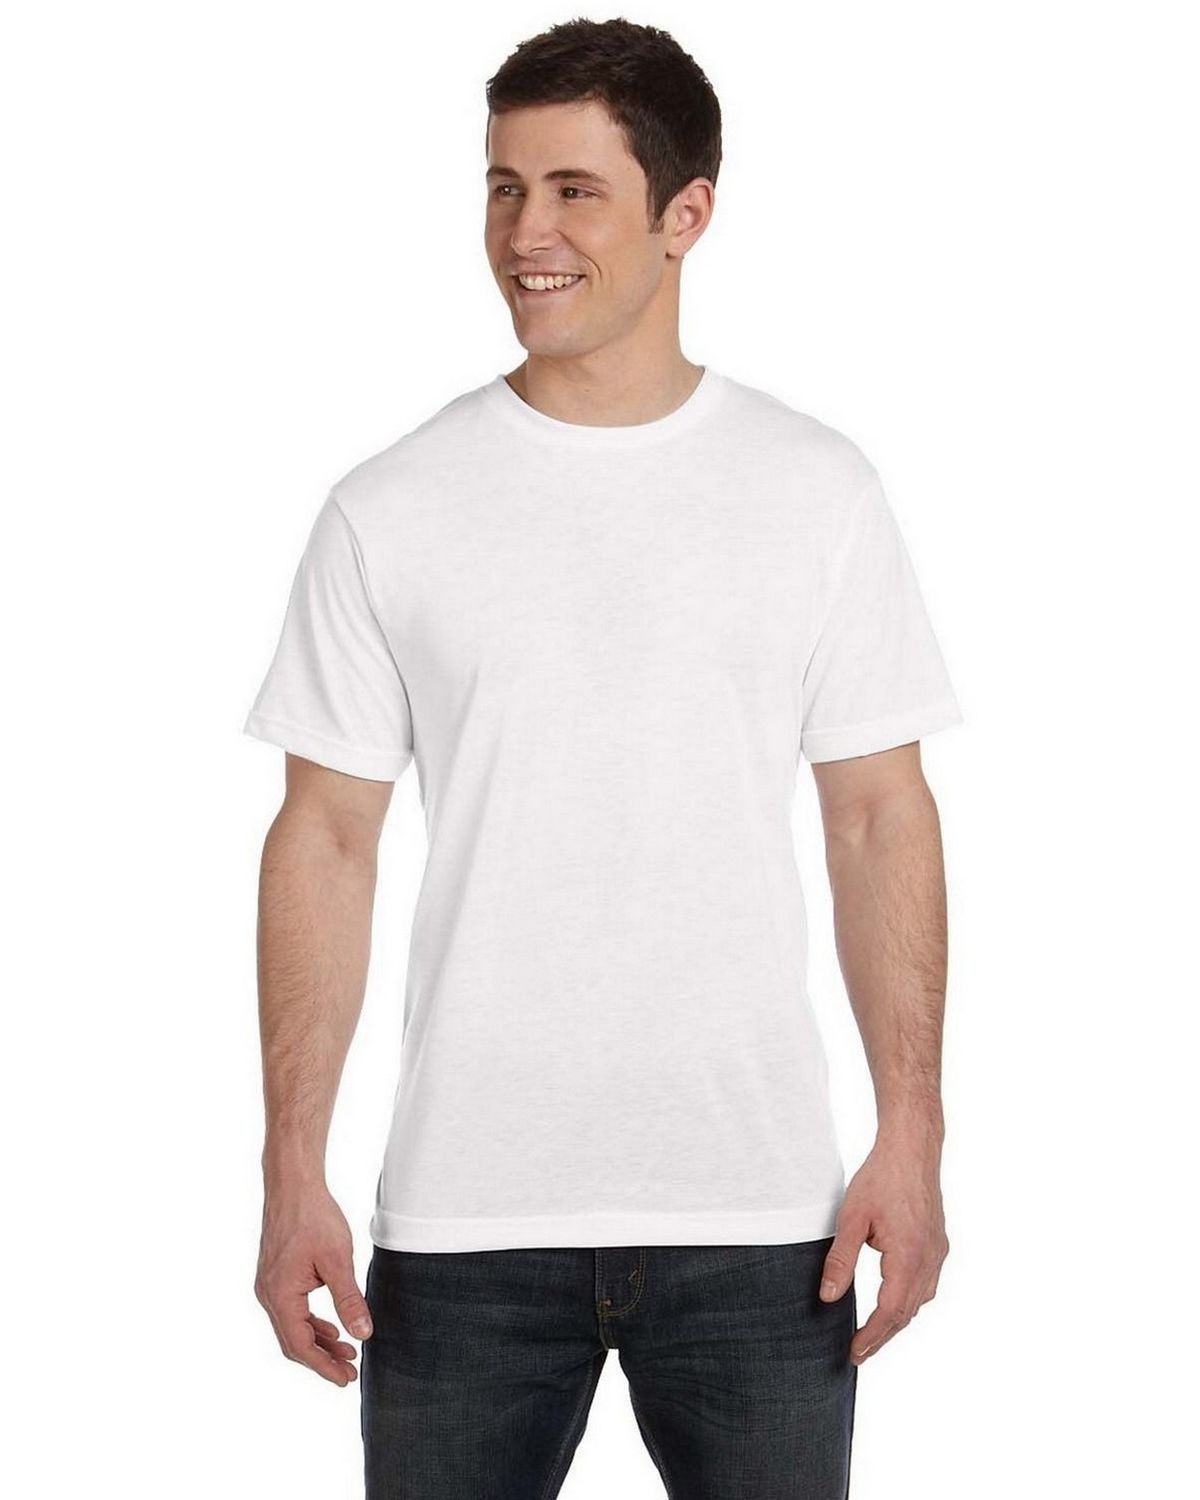 Sublivie S1910 Polyester T-Shirt - White - XL S1910